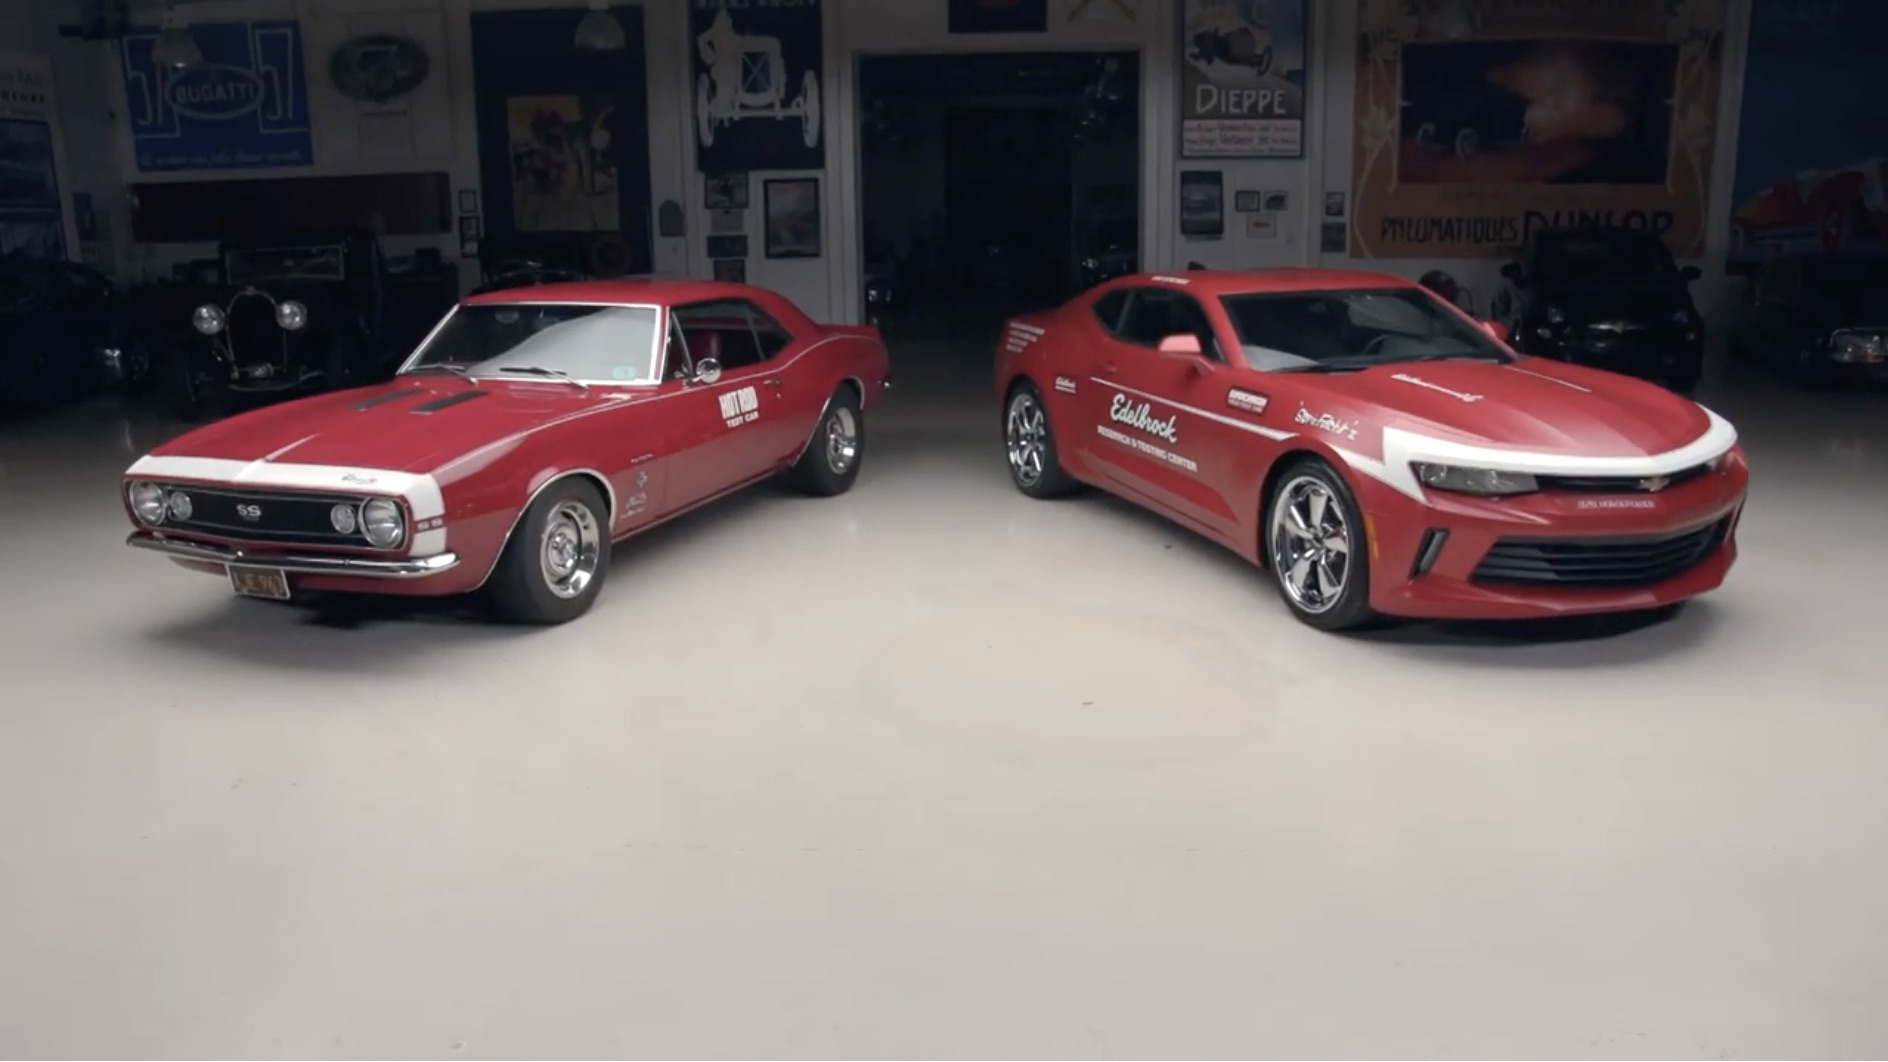 Test Bed: Get A Closer Look At The Edelbrock/Hot Rod Test Camaro, And A Later-Model Test Car Too!